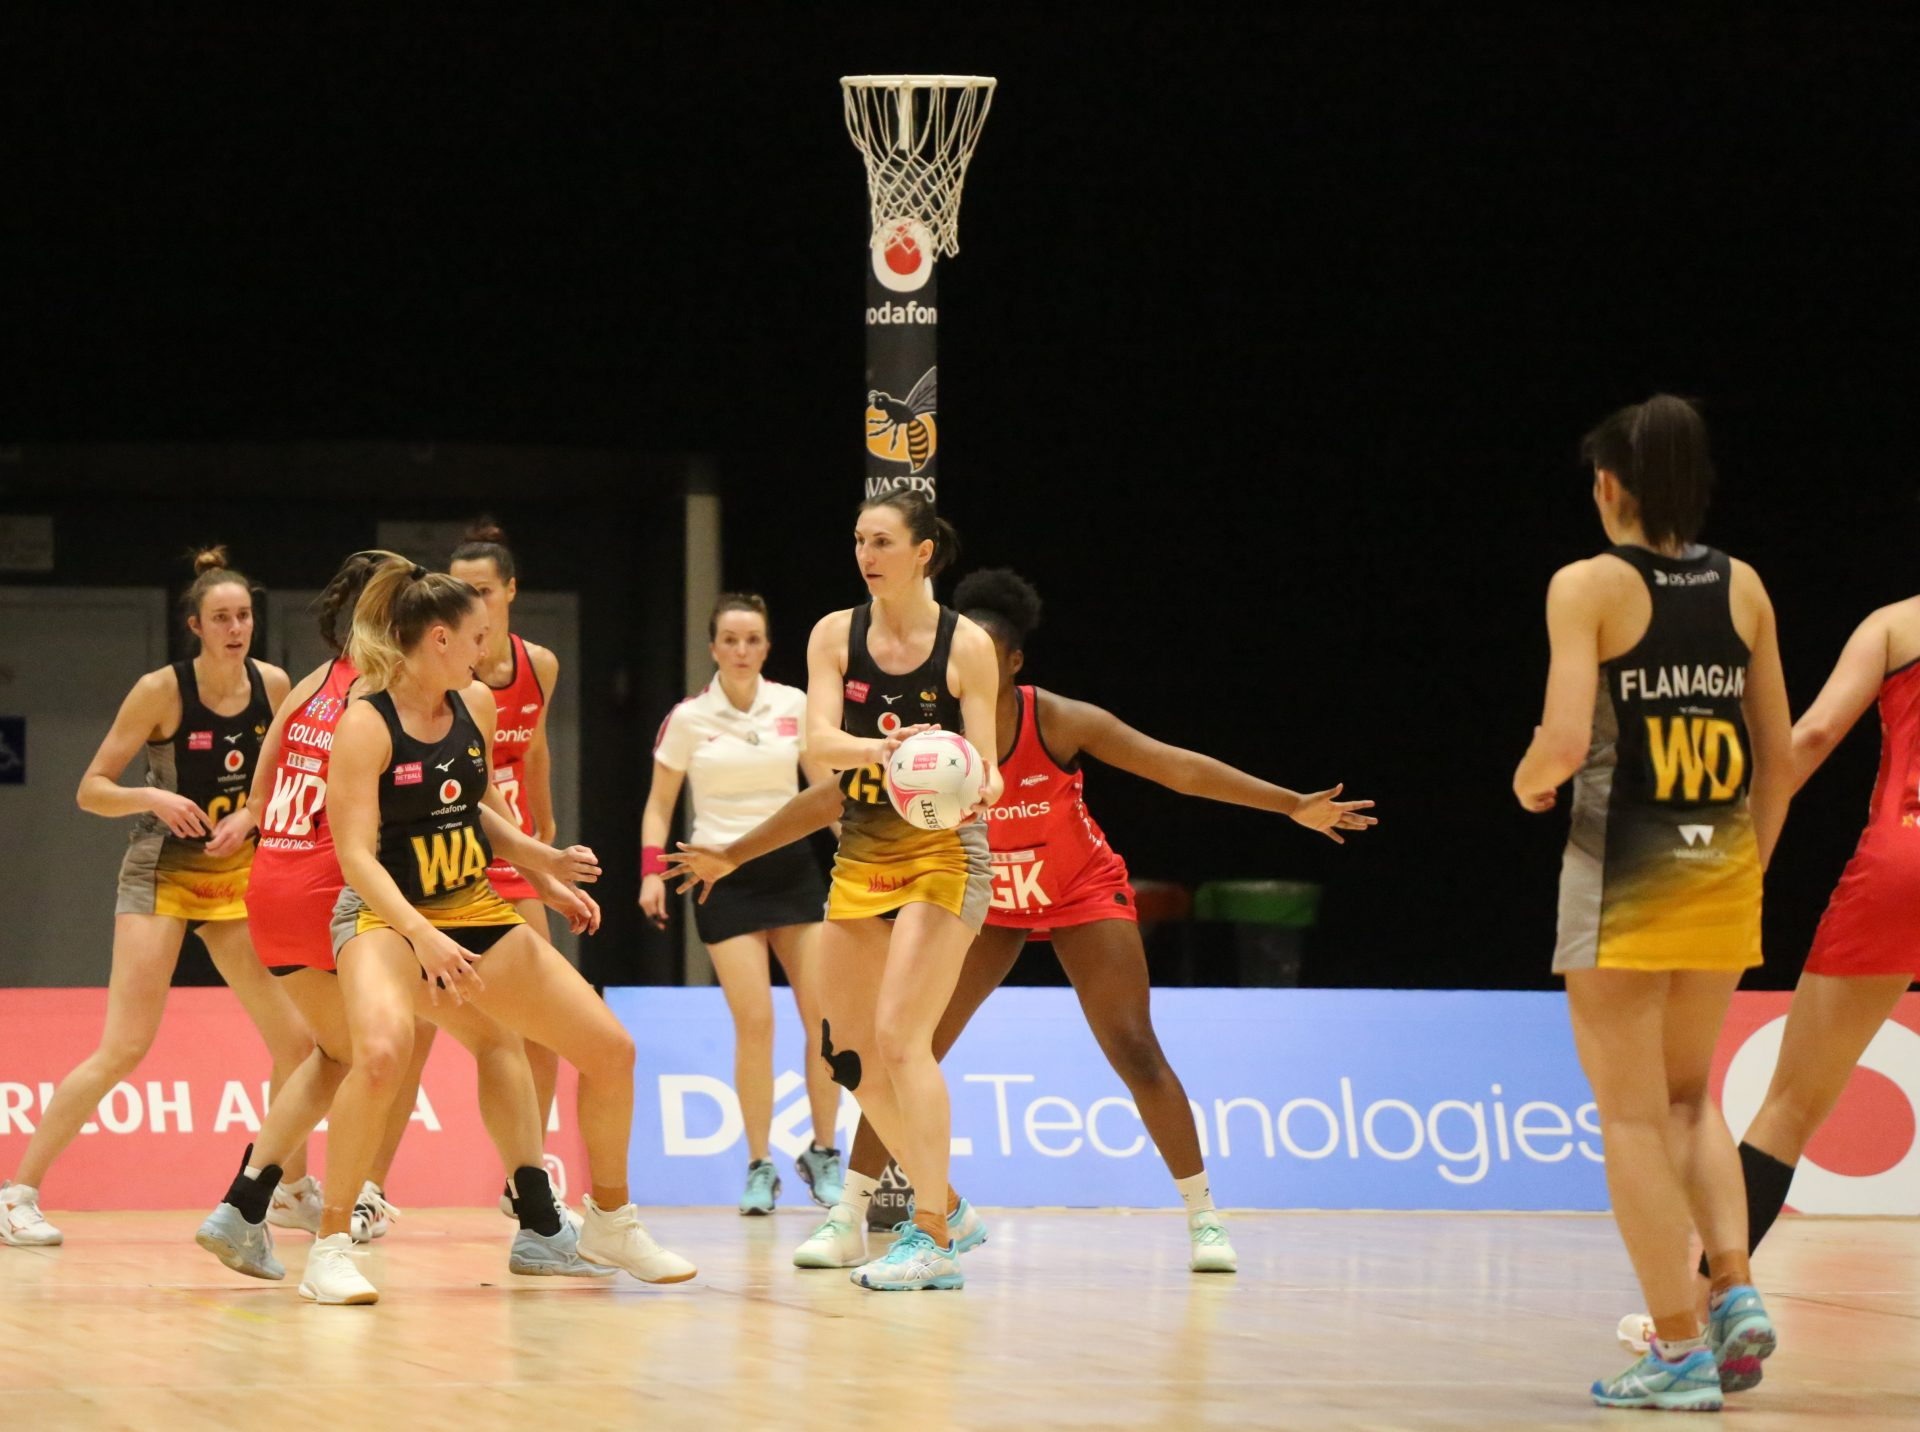 image of the Wasps Netball team during the 2019-20 season